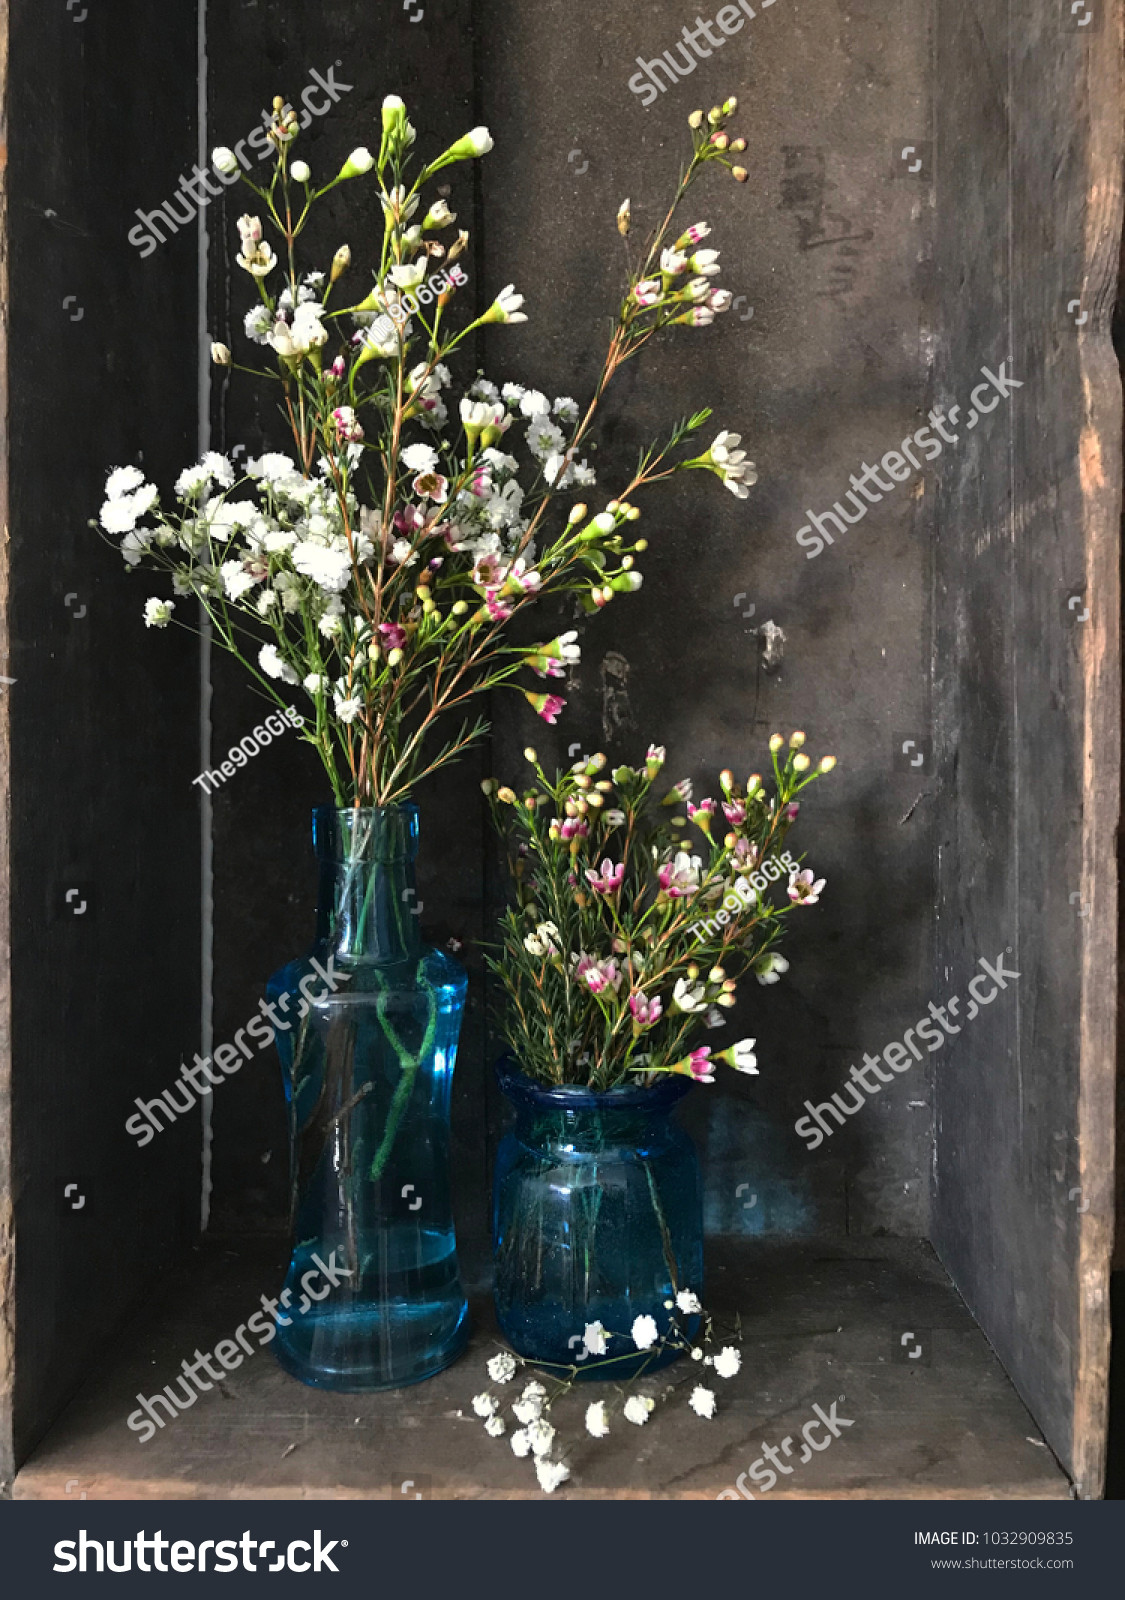 Blown Glass Vase On Wood Of Wildflowers Babys Breath Blue Glass Vases Stock Photo Edit now with Wildflowers and Babys Breath In Blue Glass Vases Wood Background Rustic Country Scene